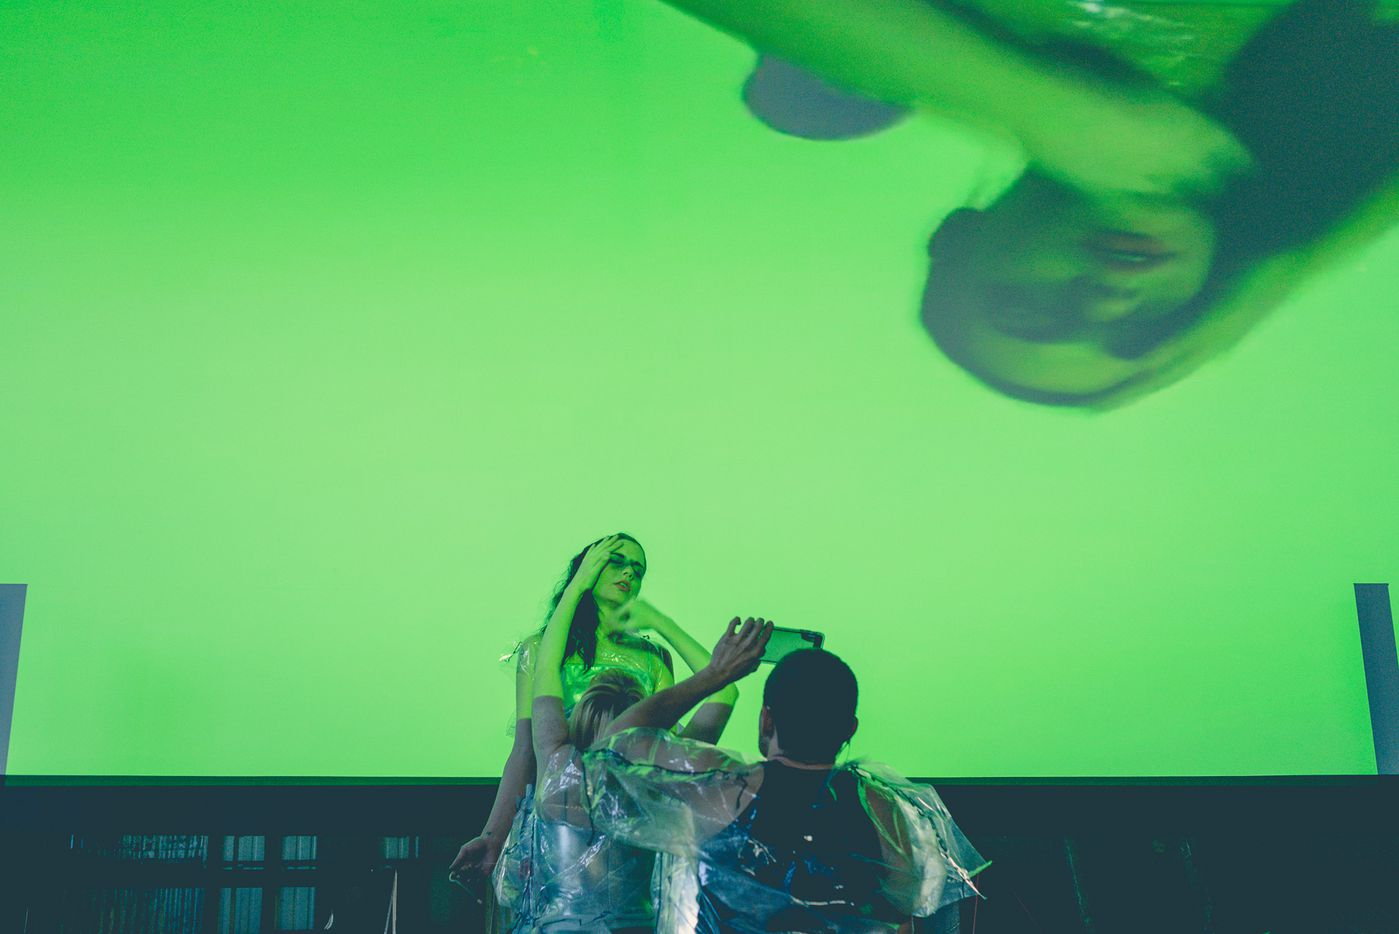 Performance artists will collaborate during Therefore's sets.